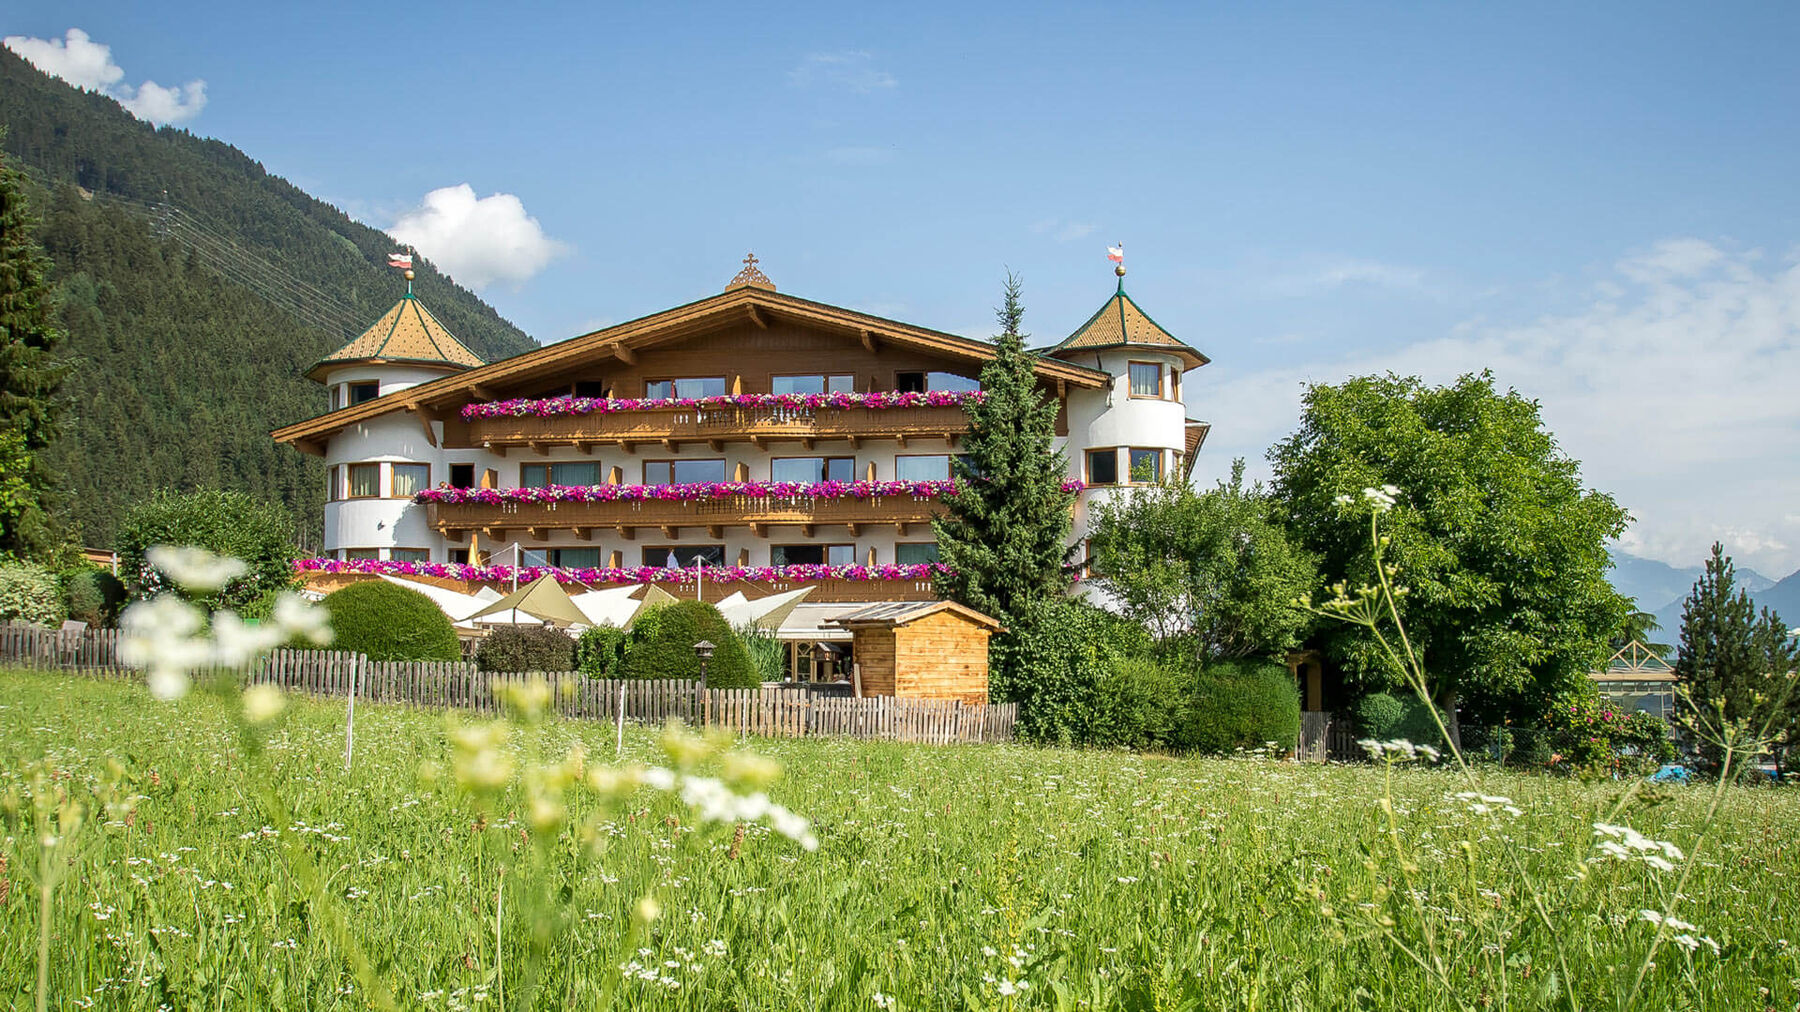 4 Star Wellness Hotel Magdalena In The